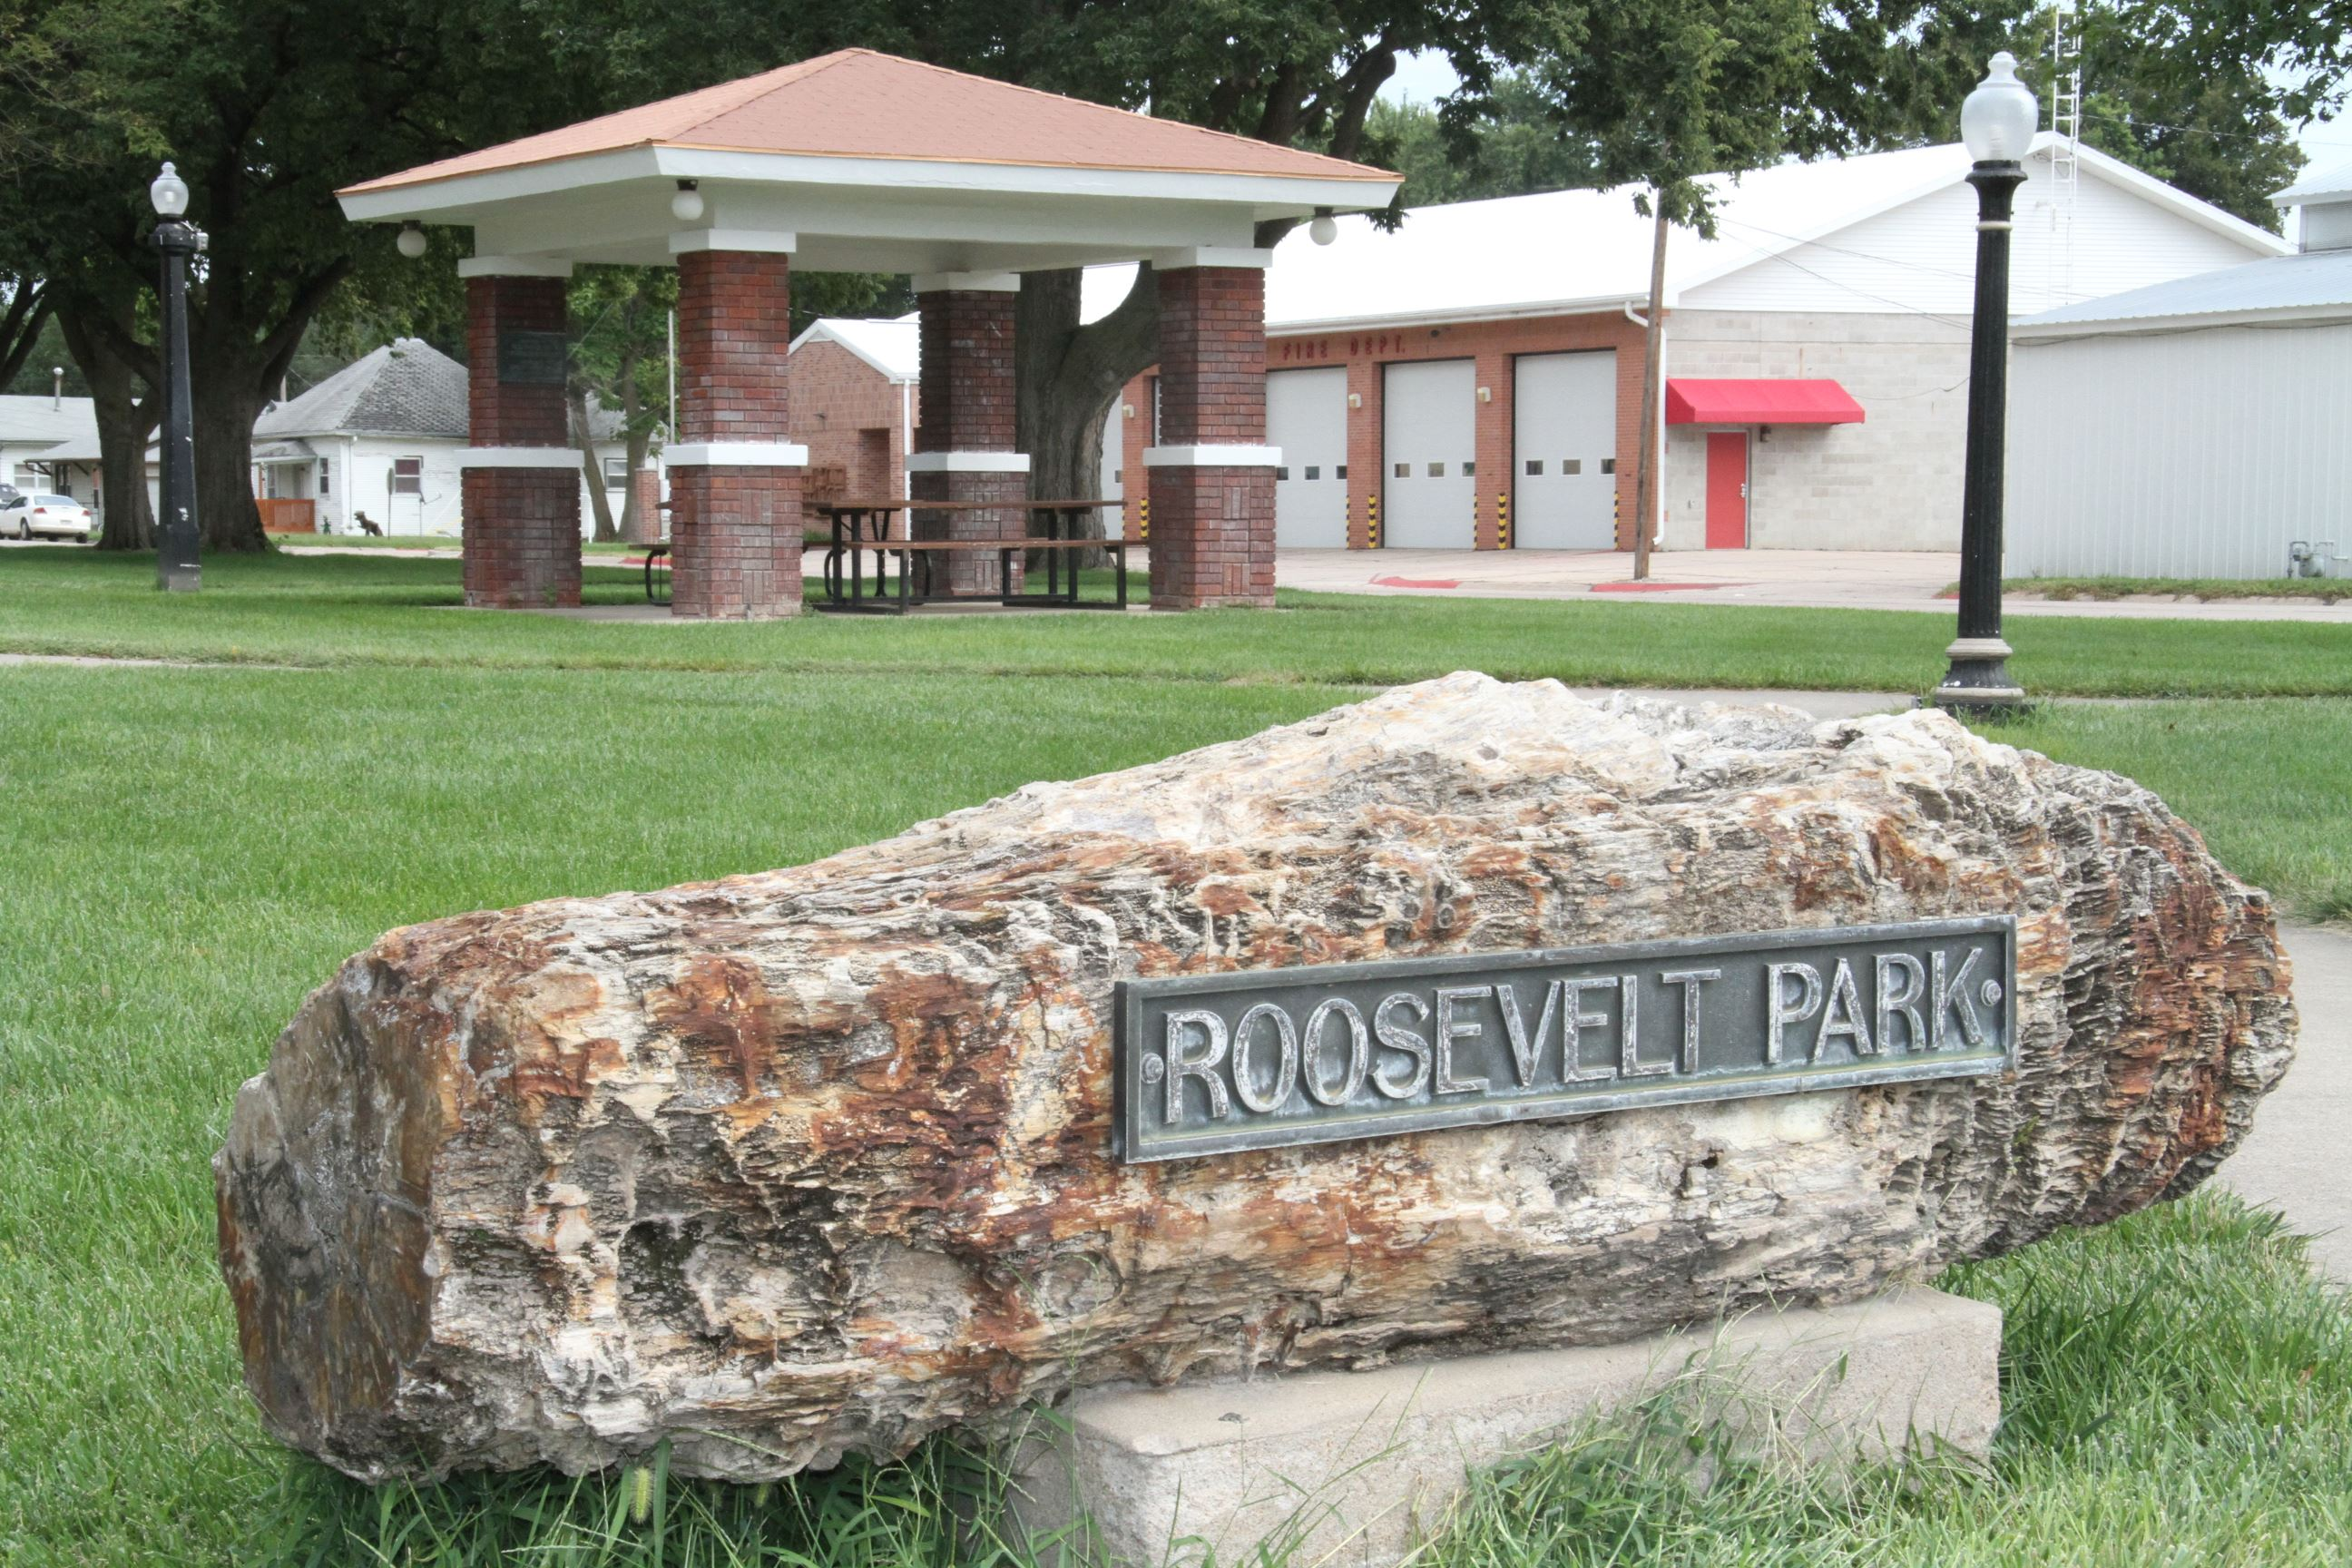 Roosevelt Park Sign on Rock